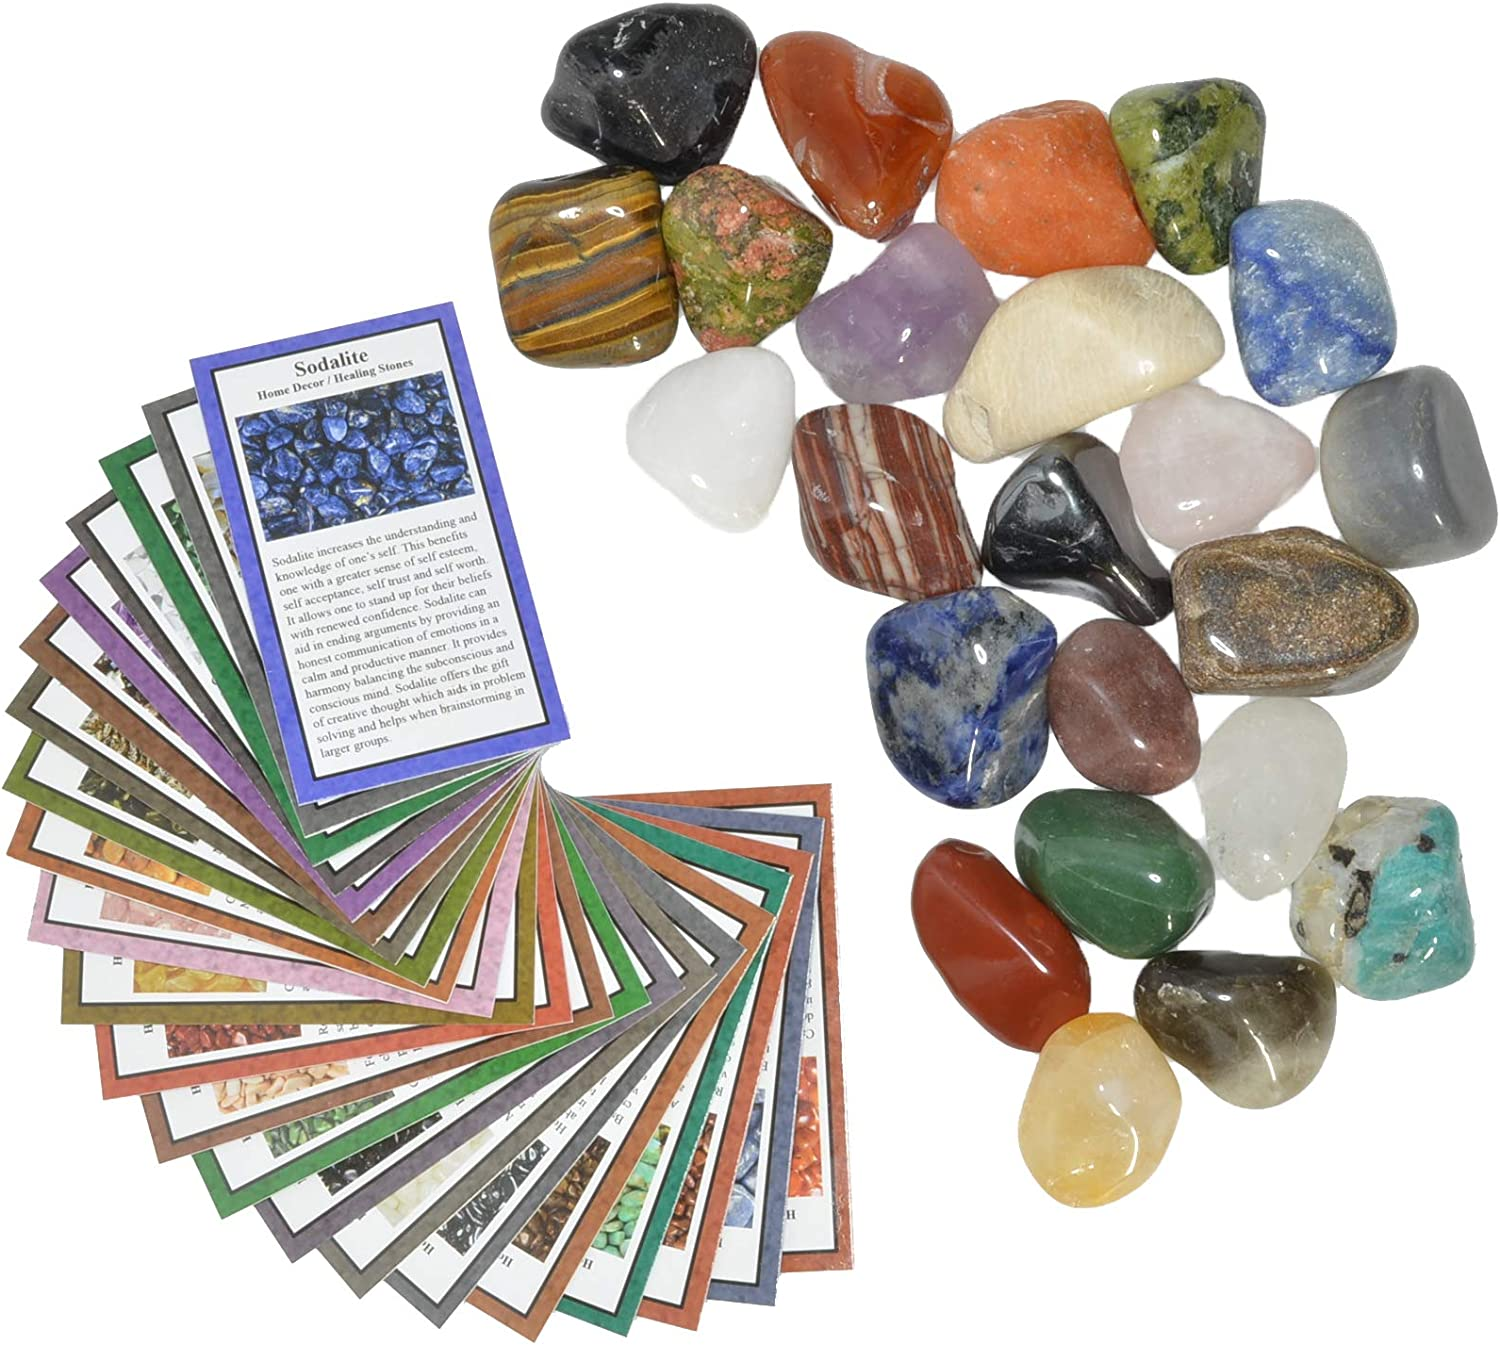 Fantasia Materials: 2 lbs Large Tumbled Polished Natural Gem Stones with Educational Rock Information and Identification Cards - avg 1.25